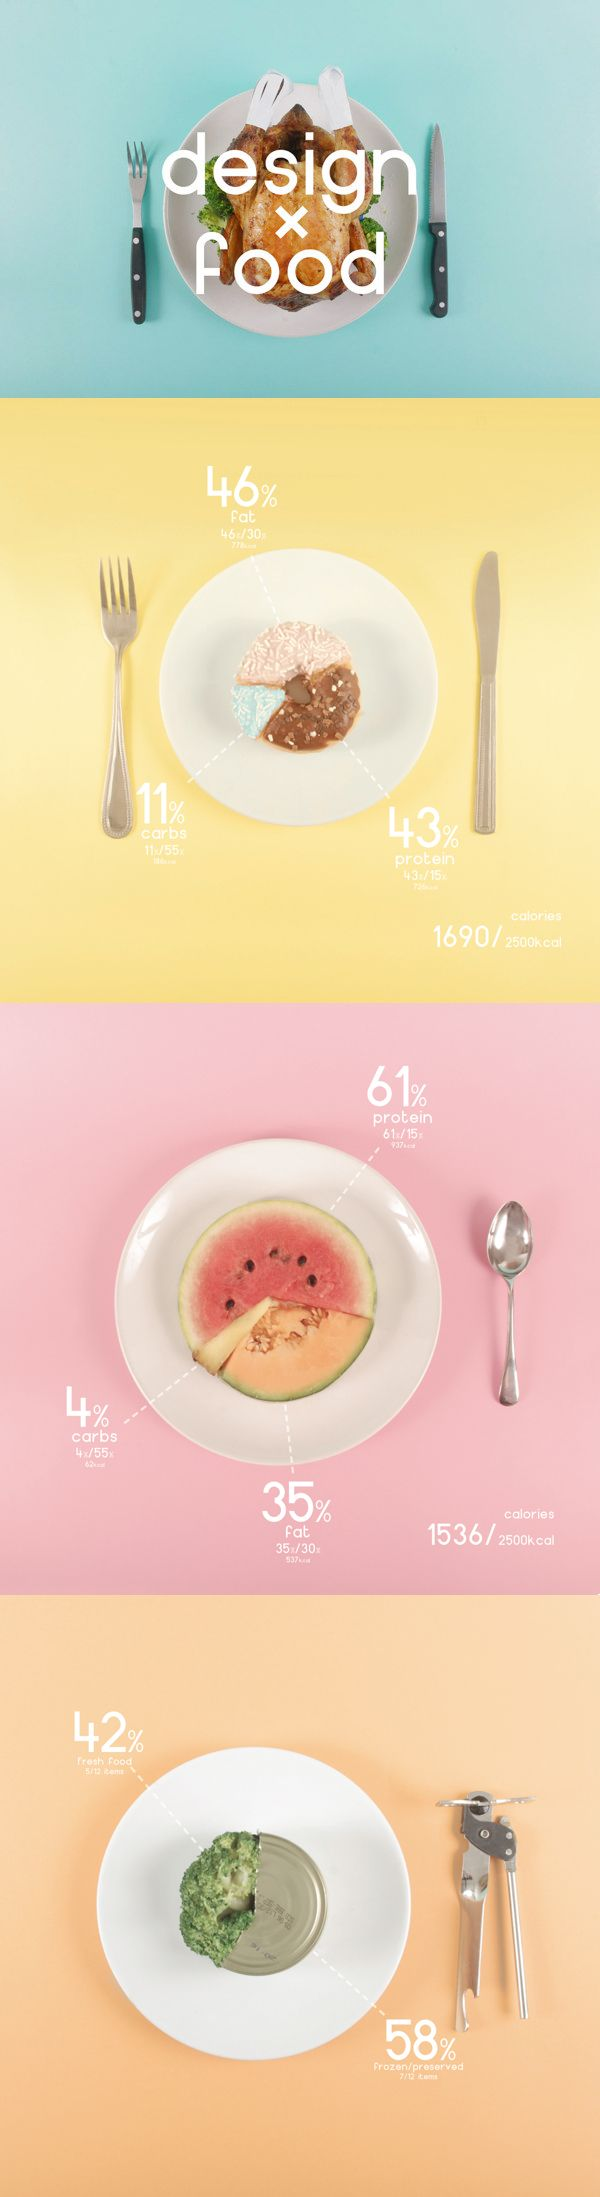 This infographic is very creative. I like how they used segmented pieces of food as pie charts. I also like the use of pastel colors.